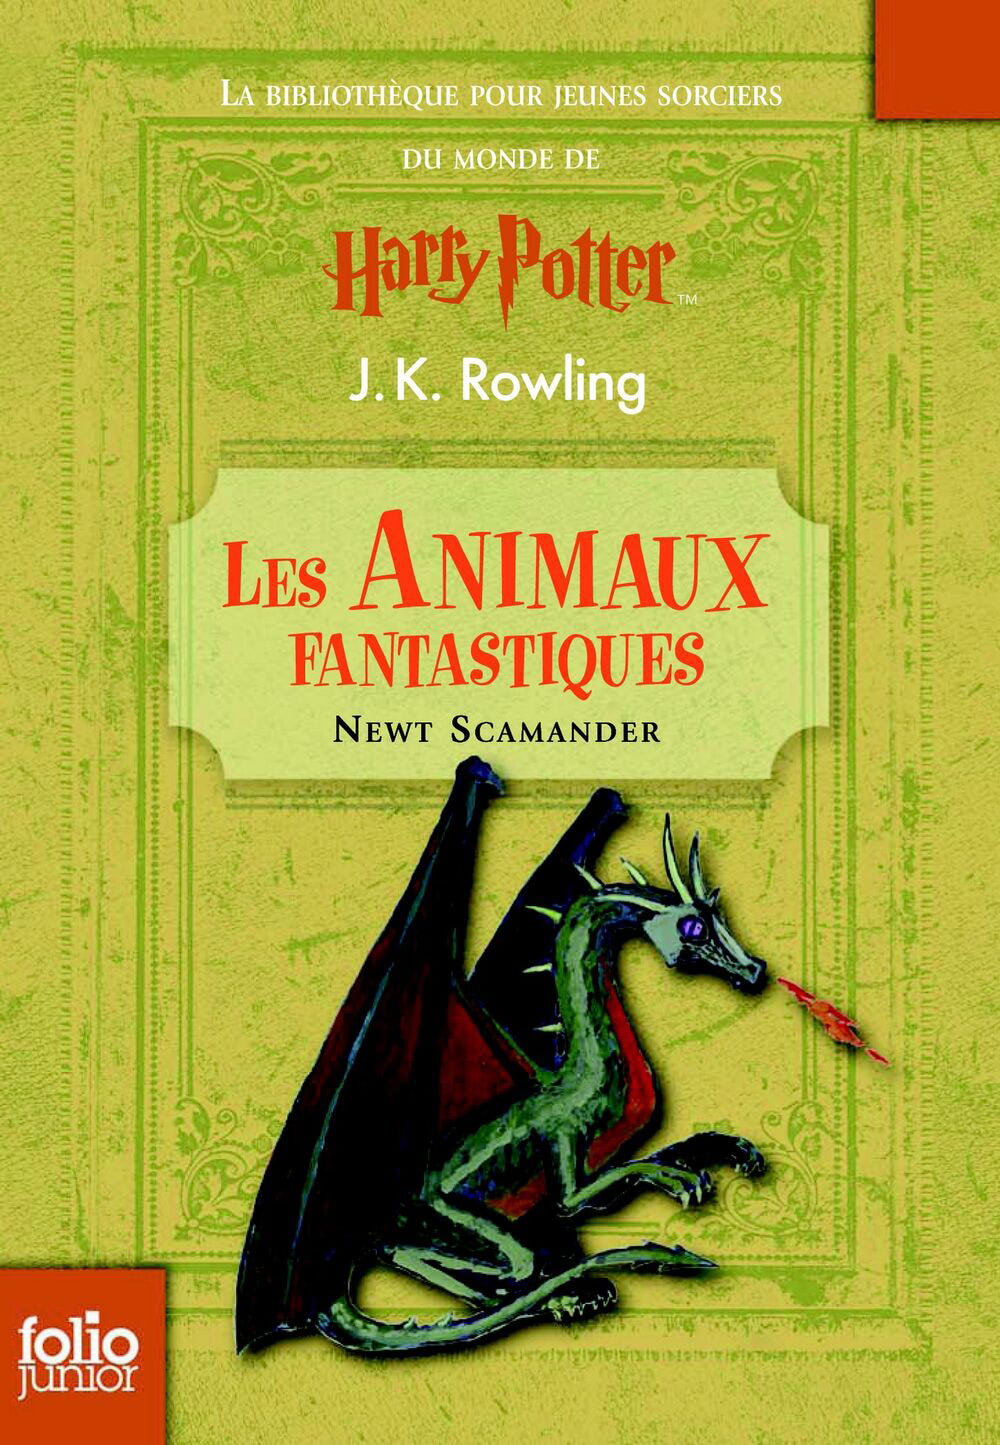 'Fantastic Beasts and Where to Find Them' French edition